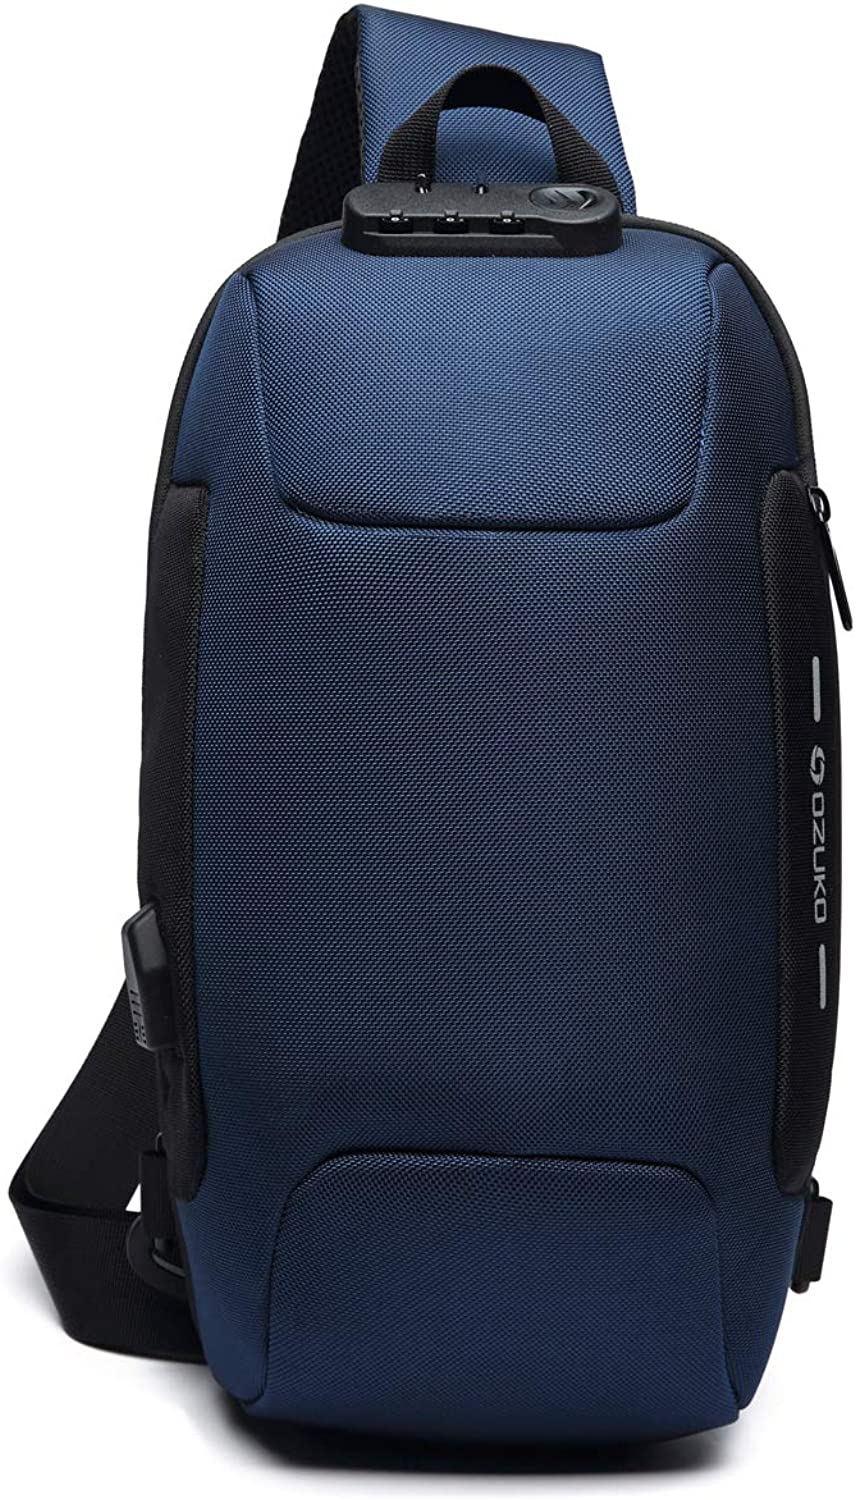 Chest Bag Anti-theft Lock Oxford Fabric Fashion Casual Daypacks with USB Charging Port 9223